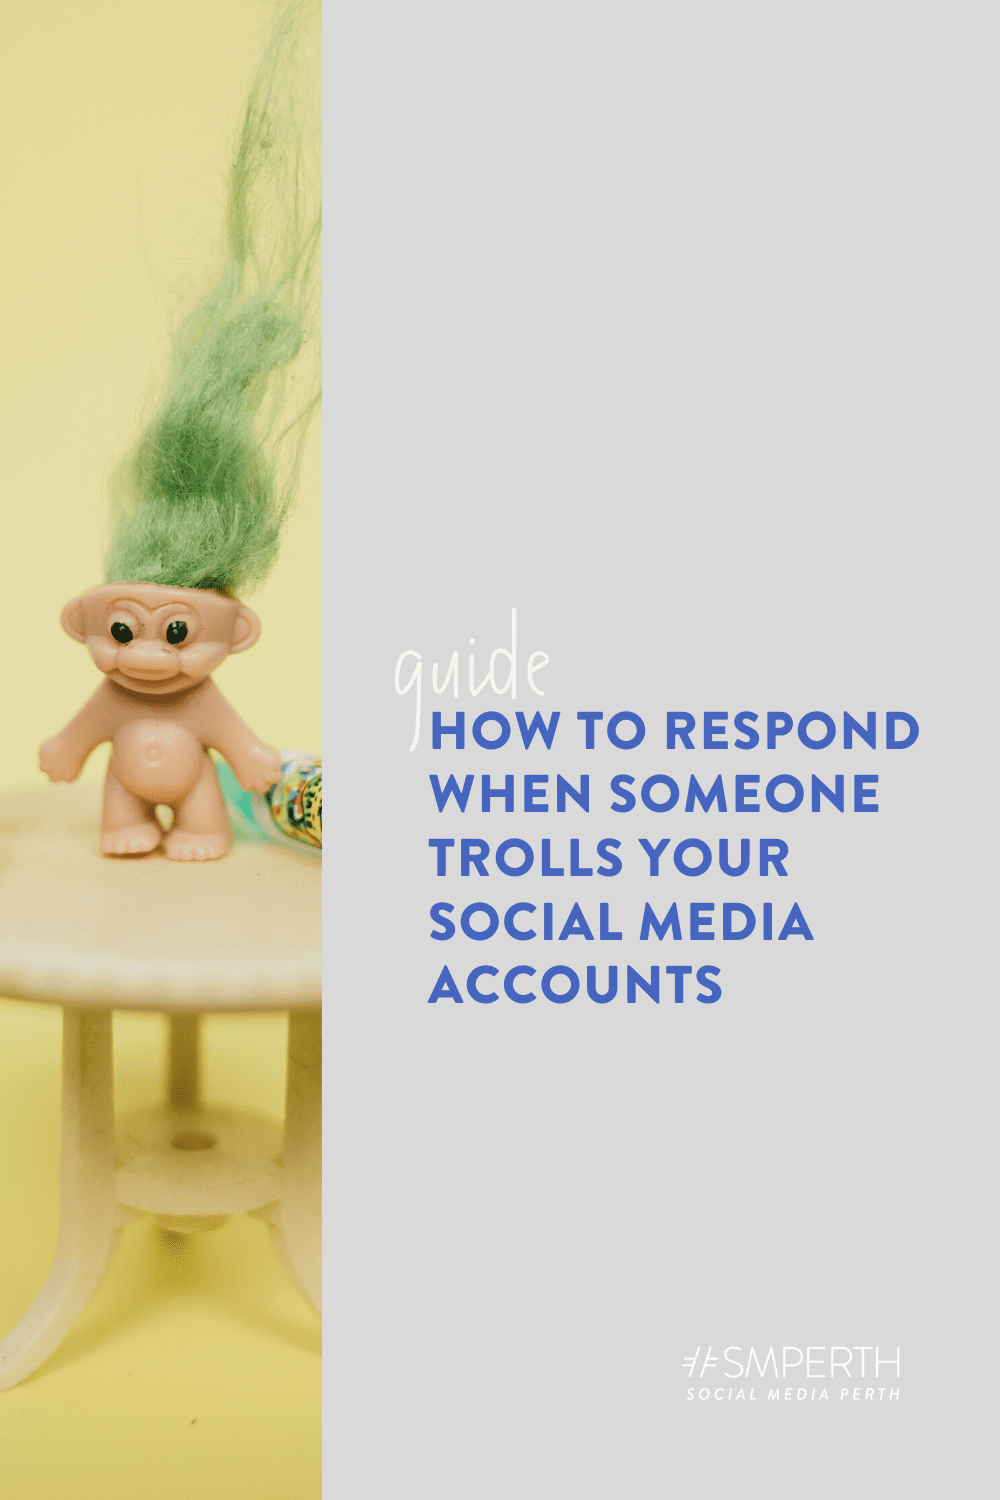 How to respond when someone trolls your social media accounts